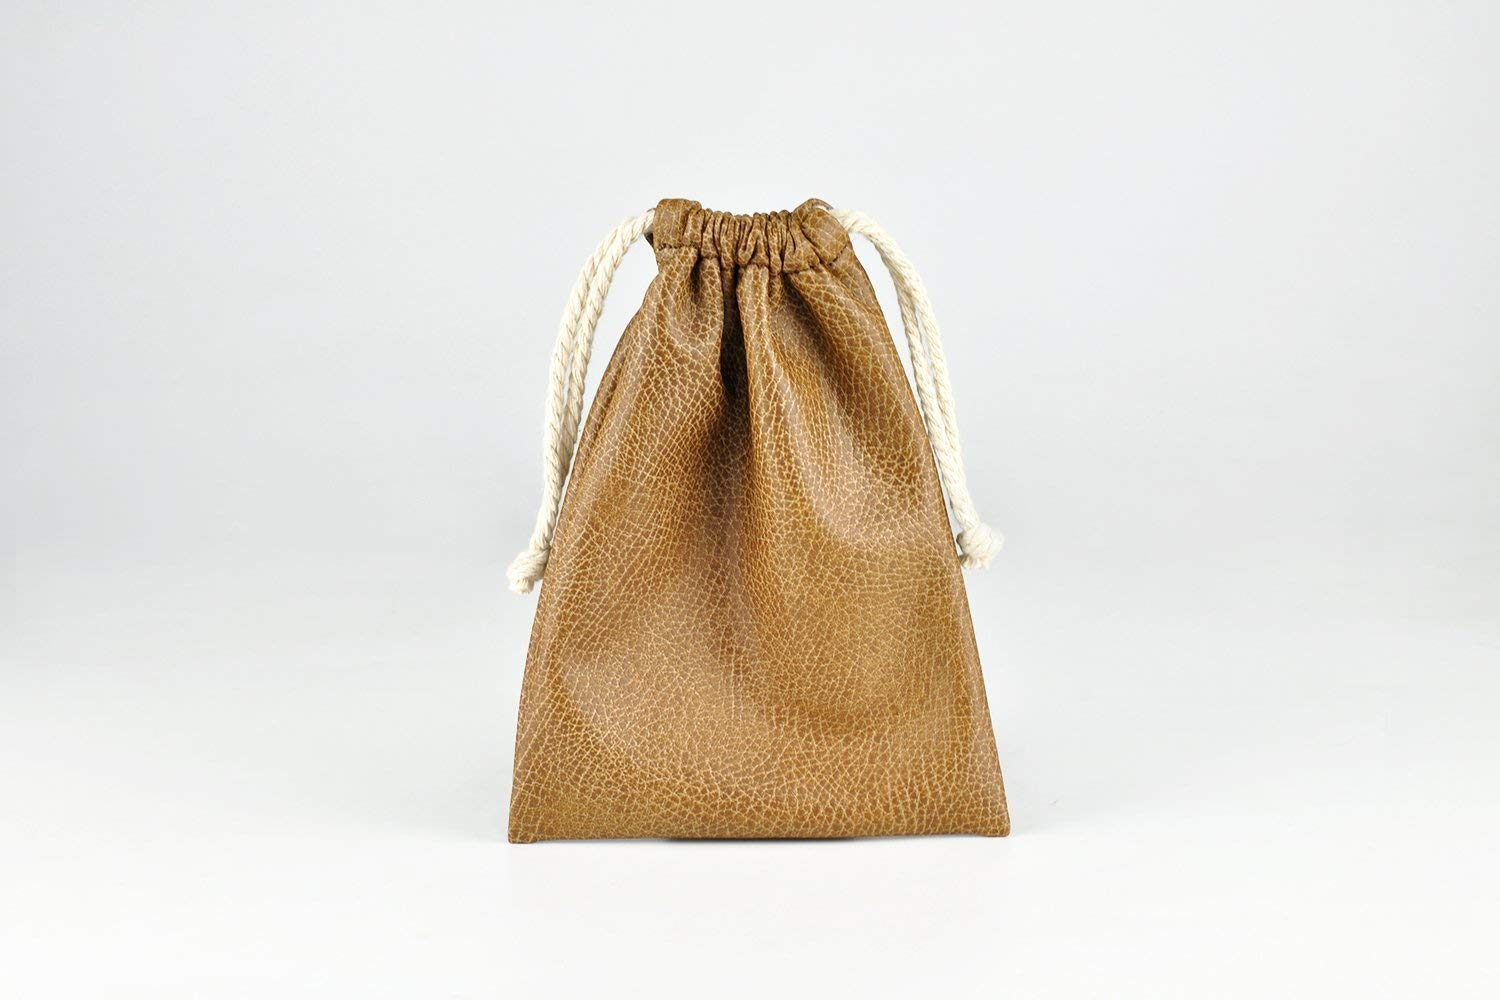 「Thing.Is」Soft PU Leather Drawstring Bag, Make up Bag with Drawstring, Jewelry Bag, Small String Pouch, Gift Bags, Brown